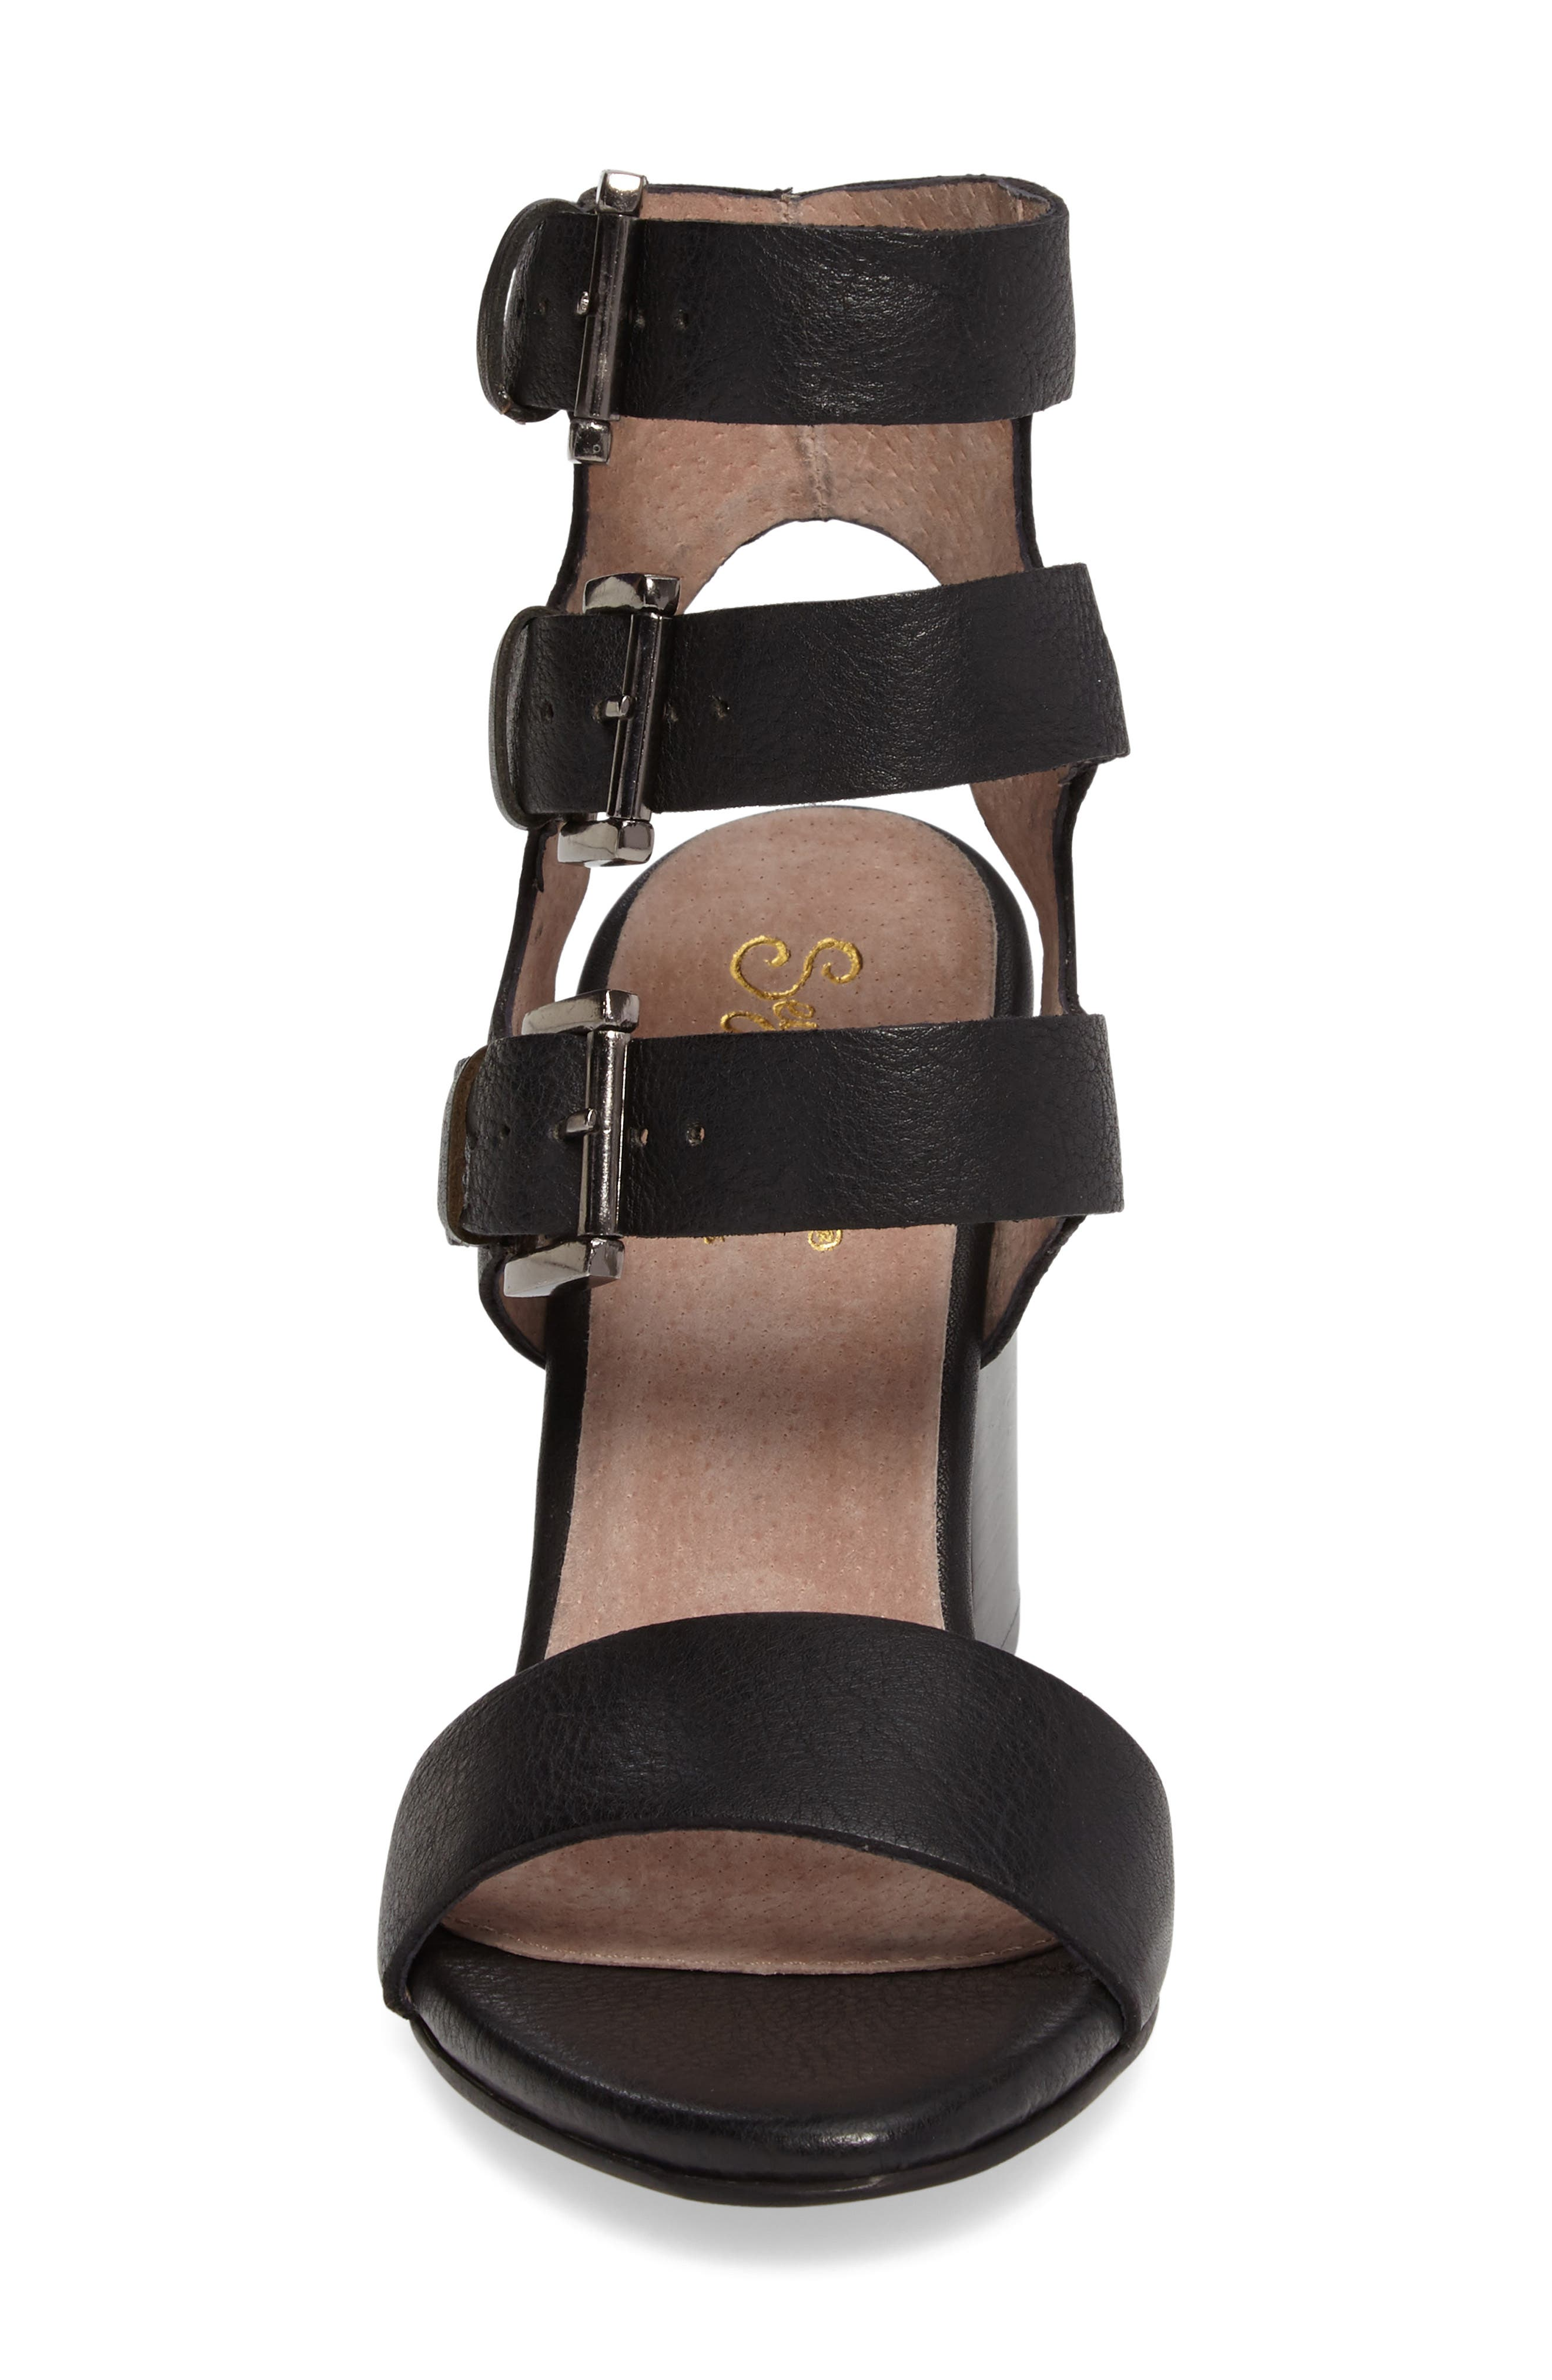 Dilly Dally Sandal,                             Alternate thumbnail 4, color,                             Black Leather